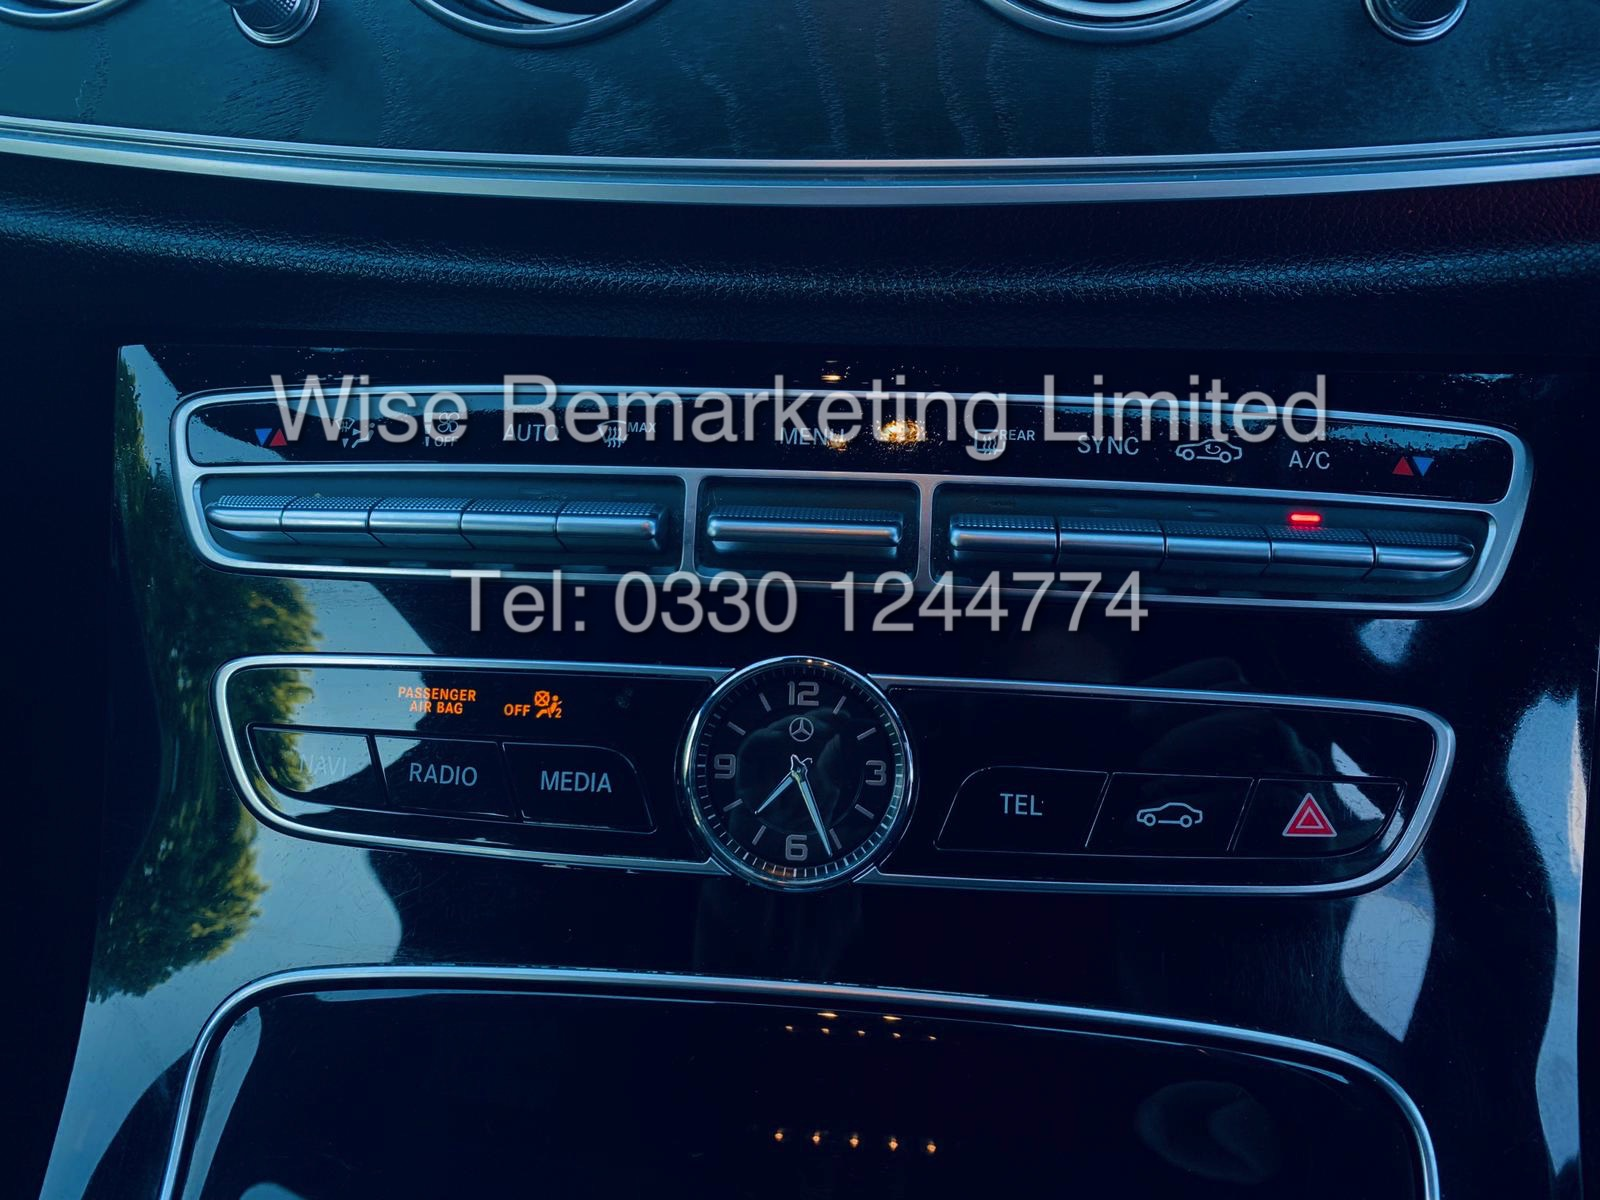 MERCEDES E CLASS ESTATE E220D AMG LINE 2017 / 9G -TRONIC / *LOW MILES* / 1 OWNER - Image 31 of 42